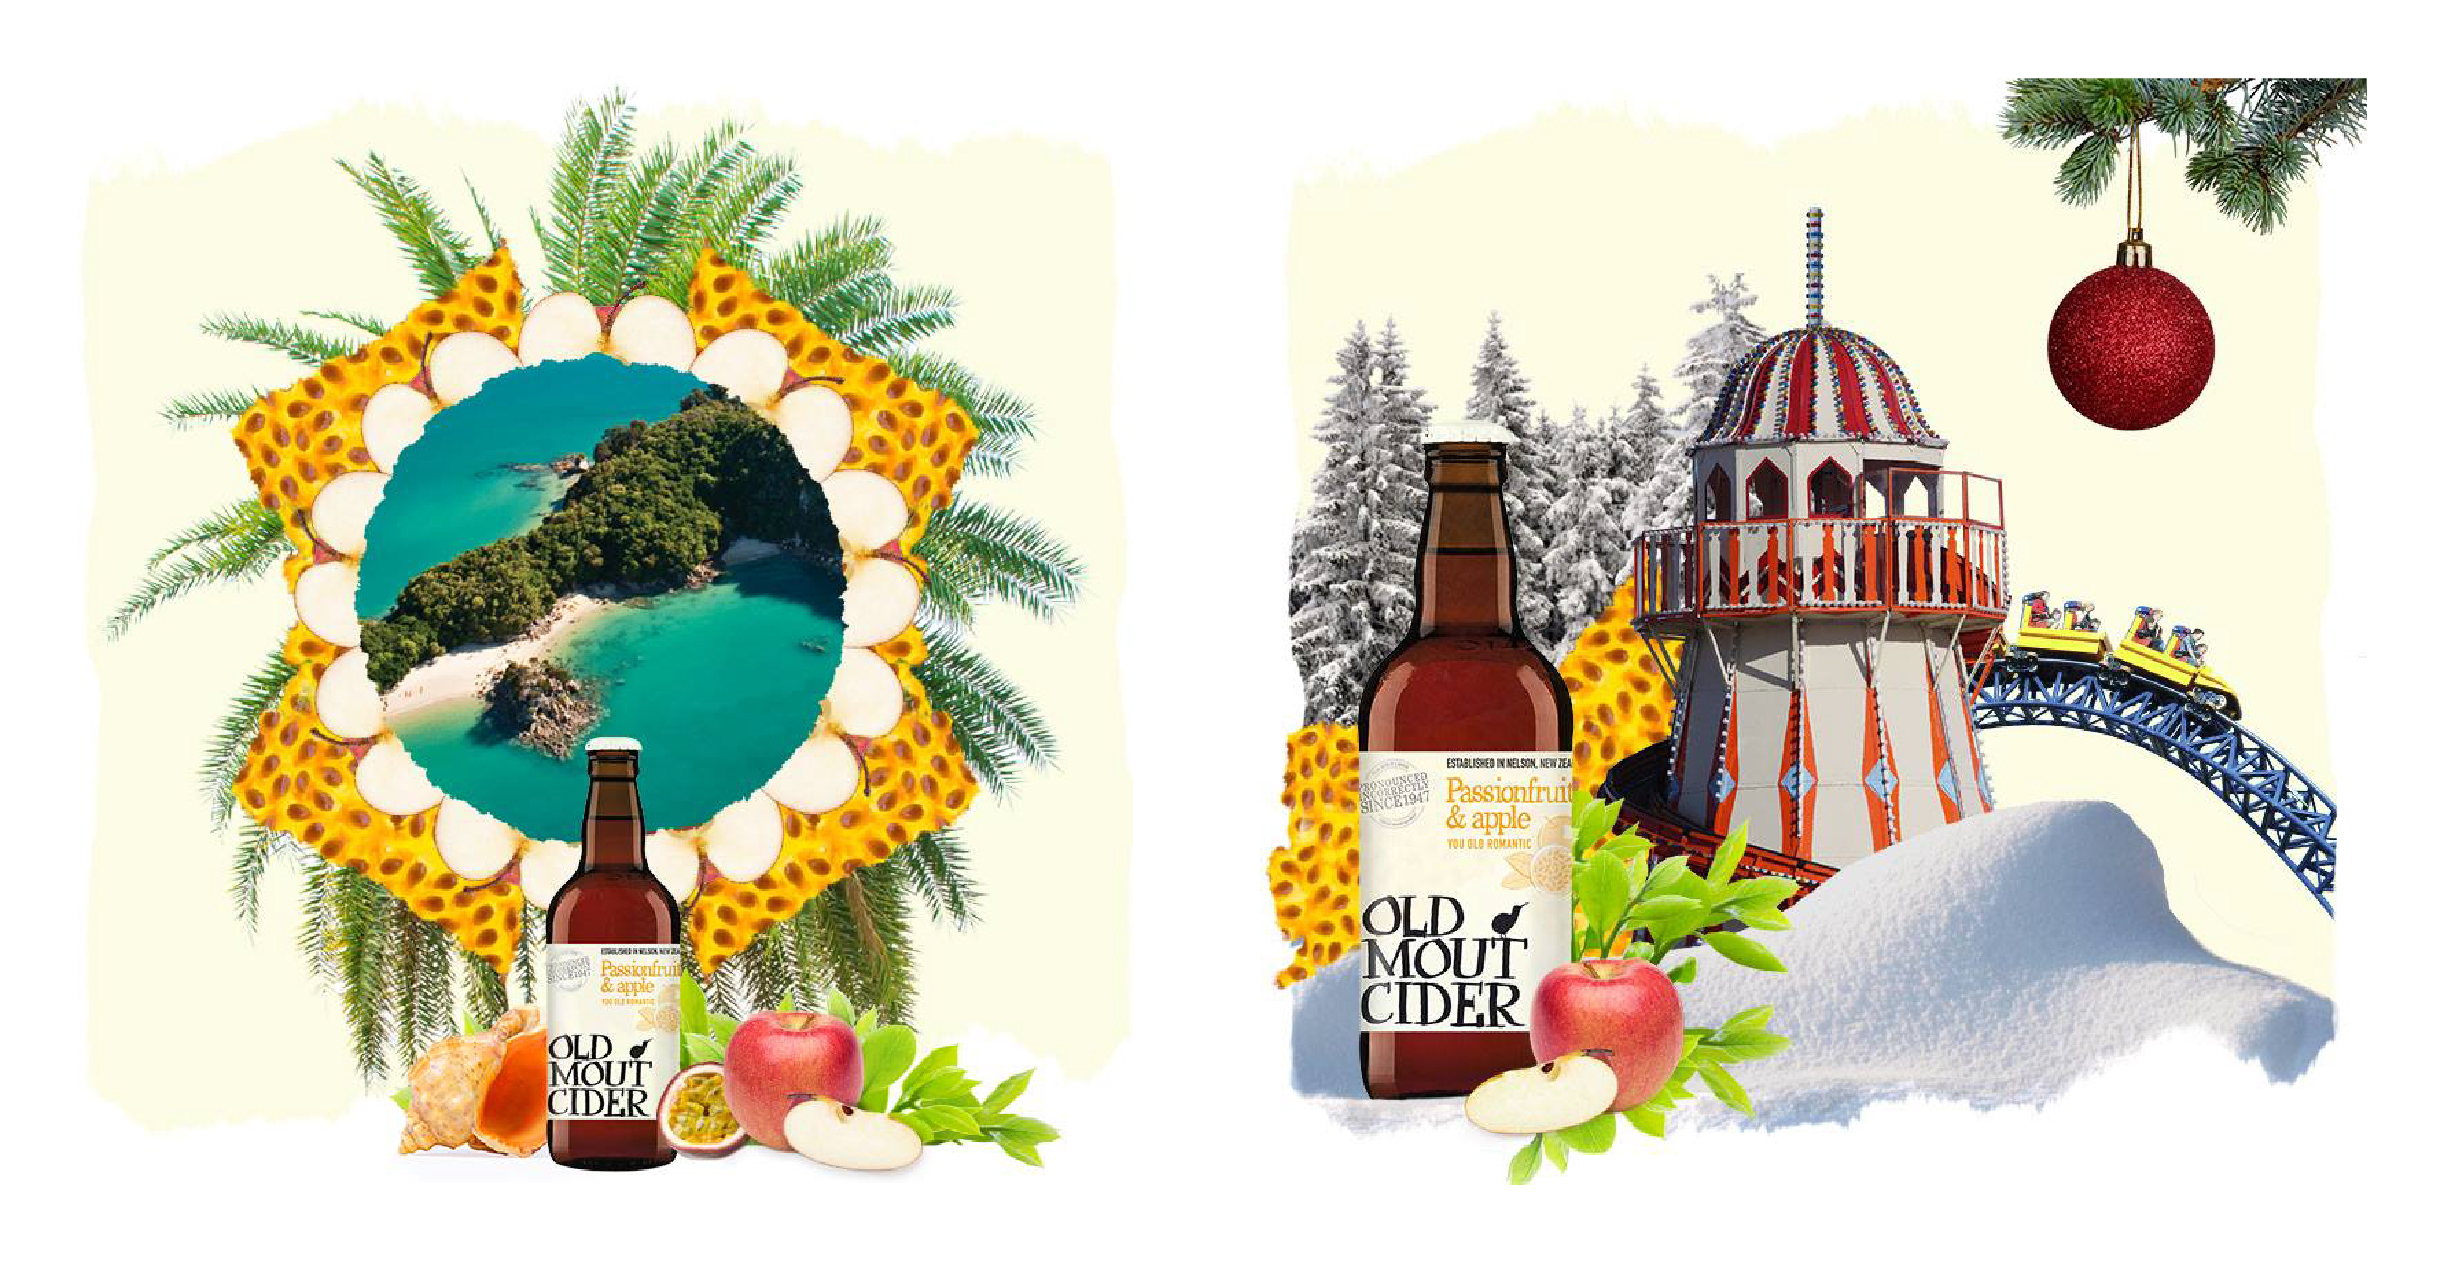 Social media collages for Old Mout Cider launch in the UK - tropical island and winter wonderland promotions